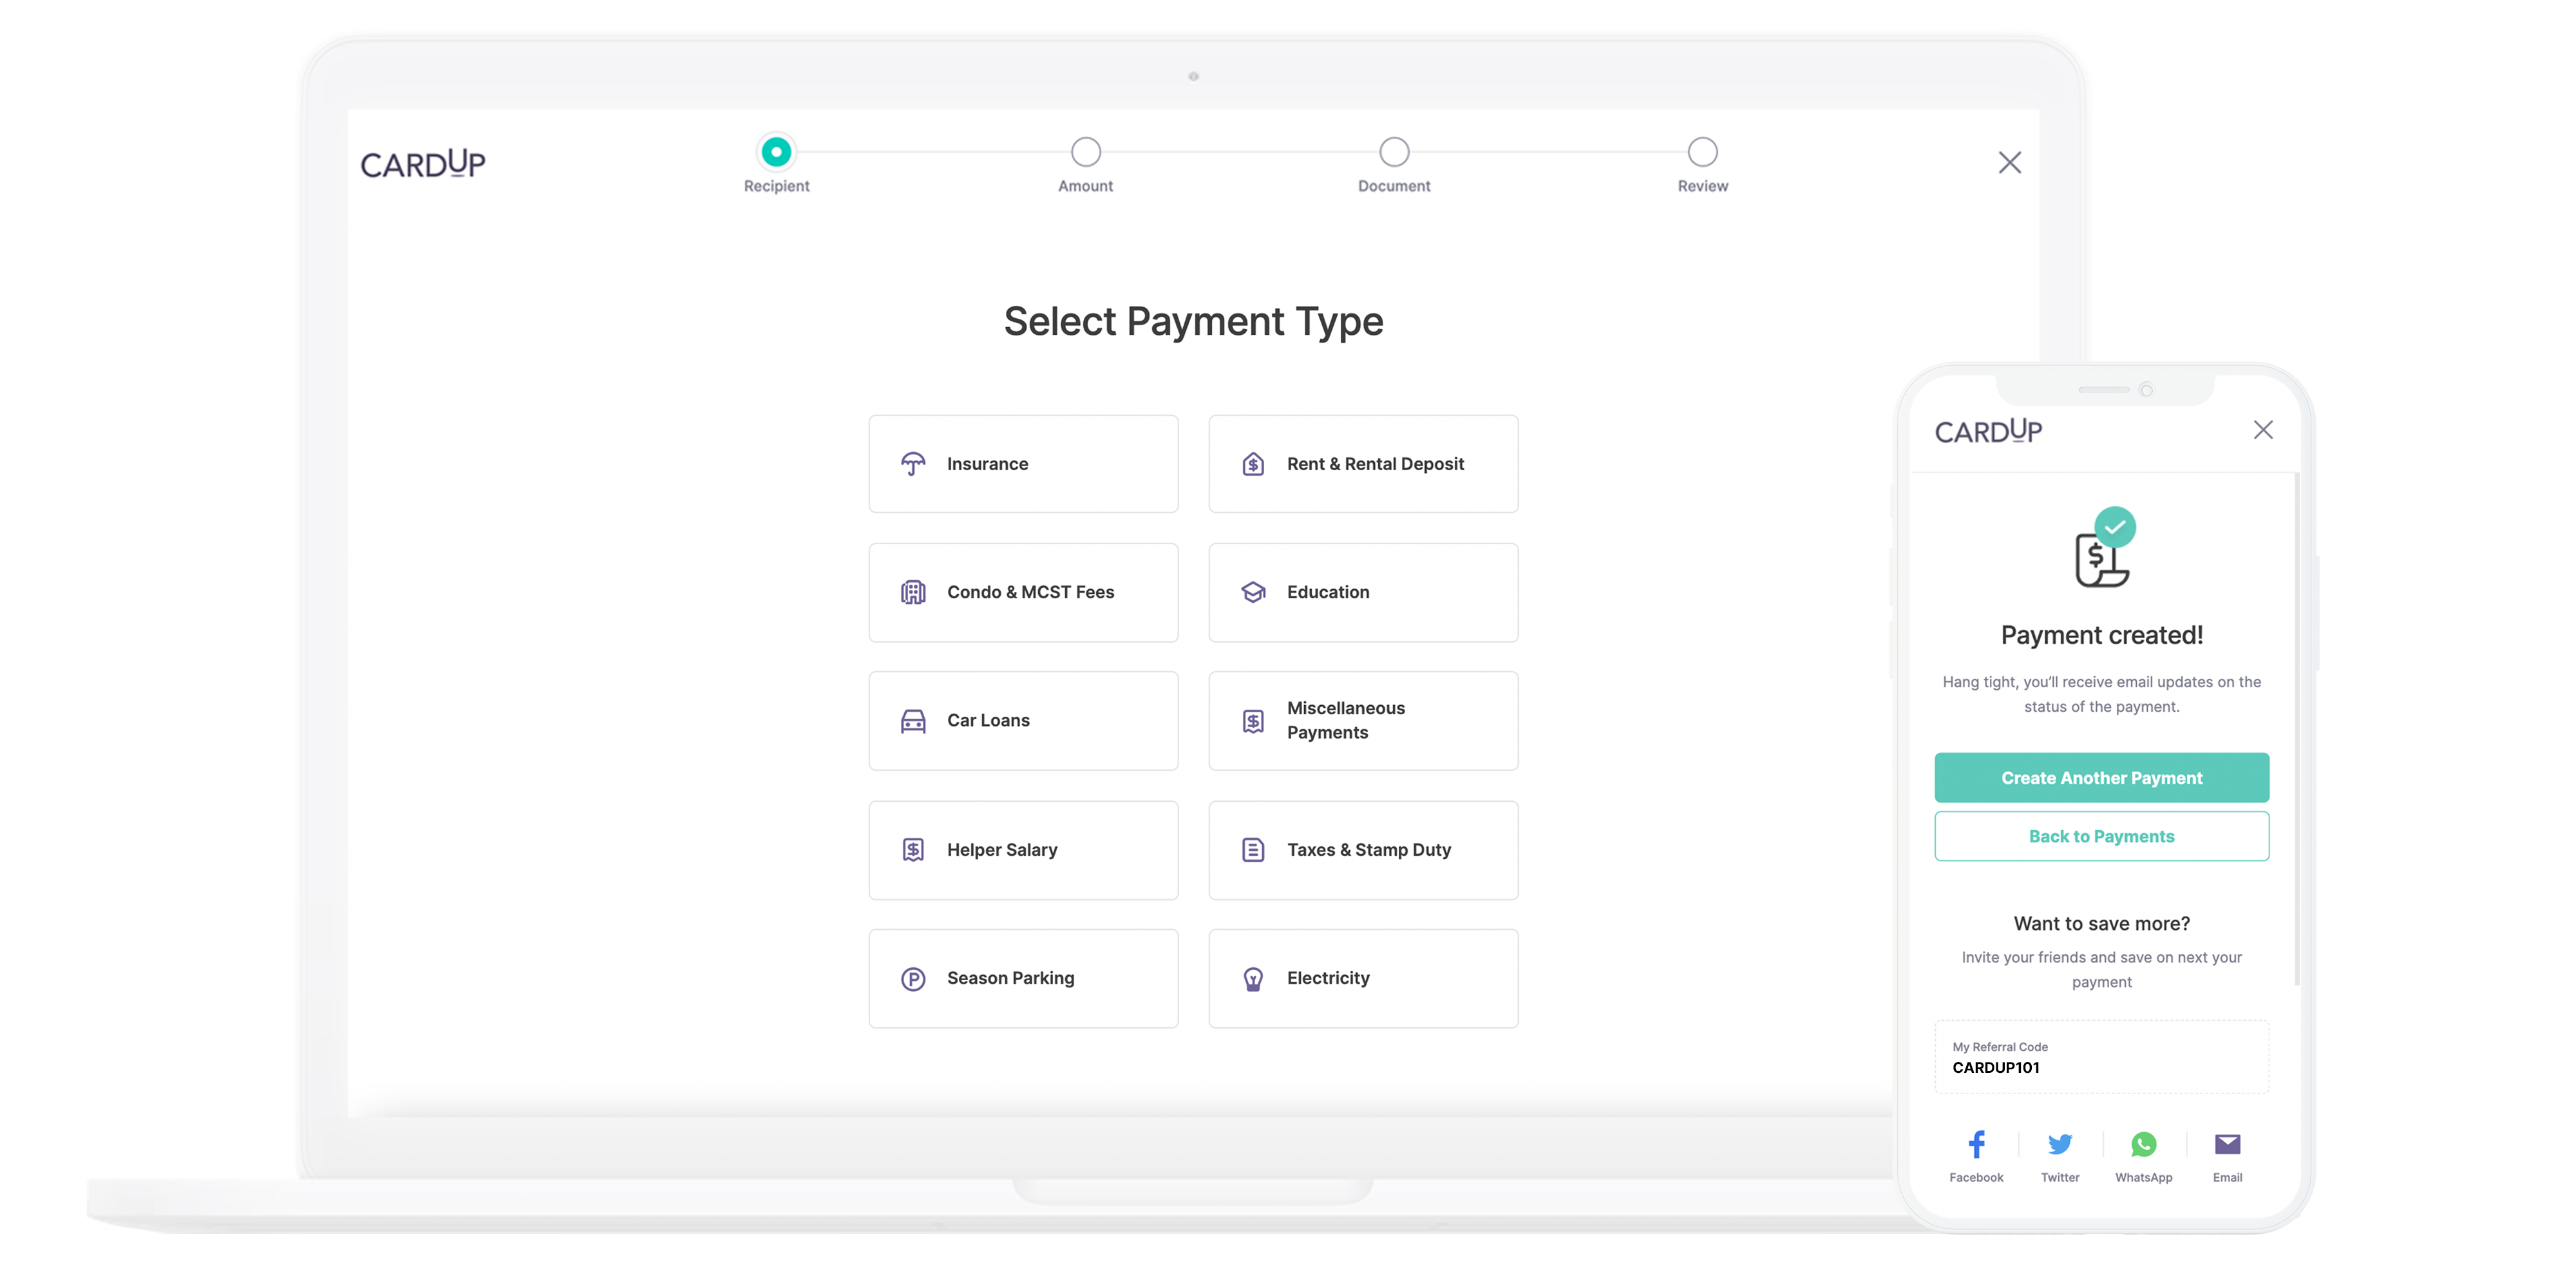 Schedule a payment through CardUp on your laptop, mobile, or any device